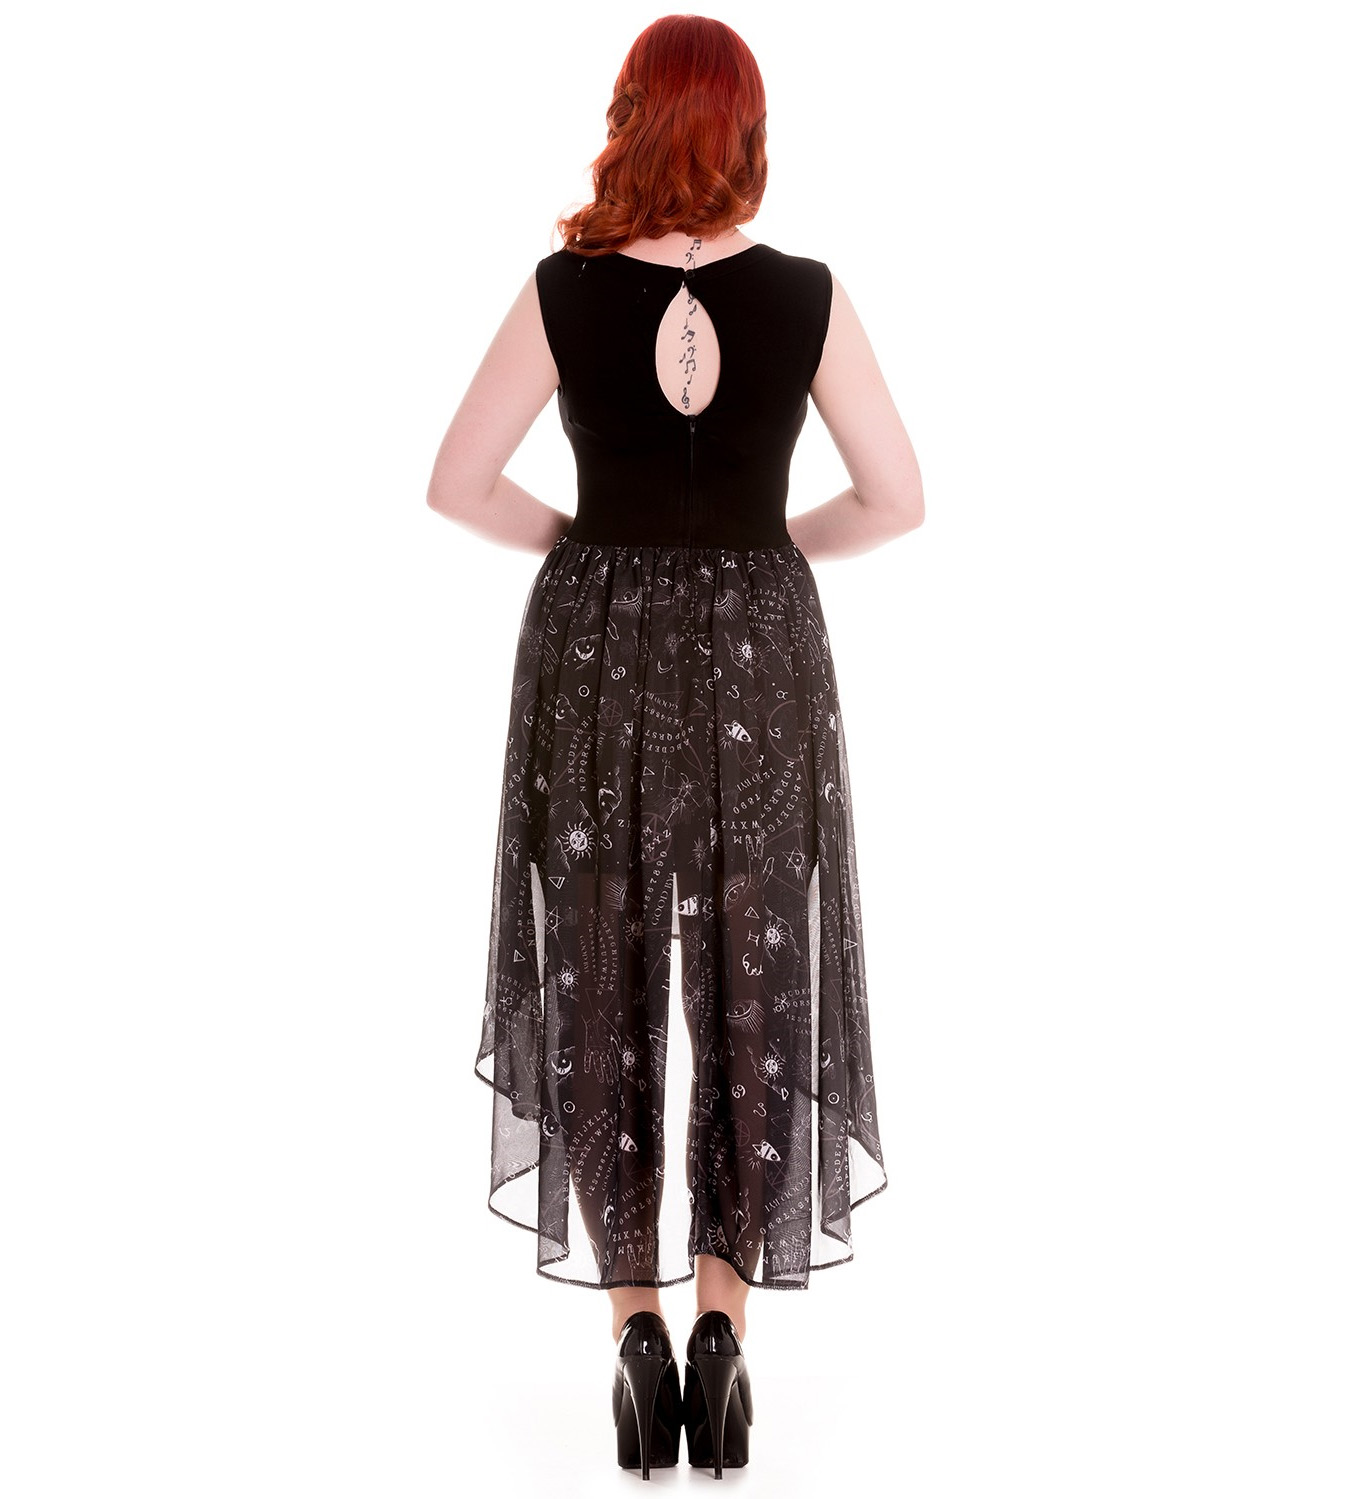 HELL-BUNNY-Spin-Doctor-Goth-Black-Witch-Ouija-SPIRIT-Dress-All-Sizes thumbnail 21